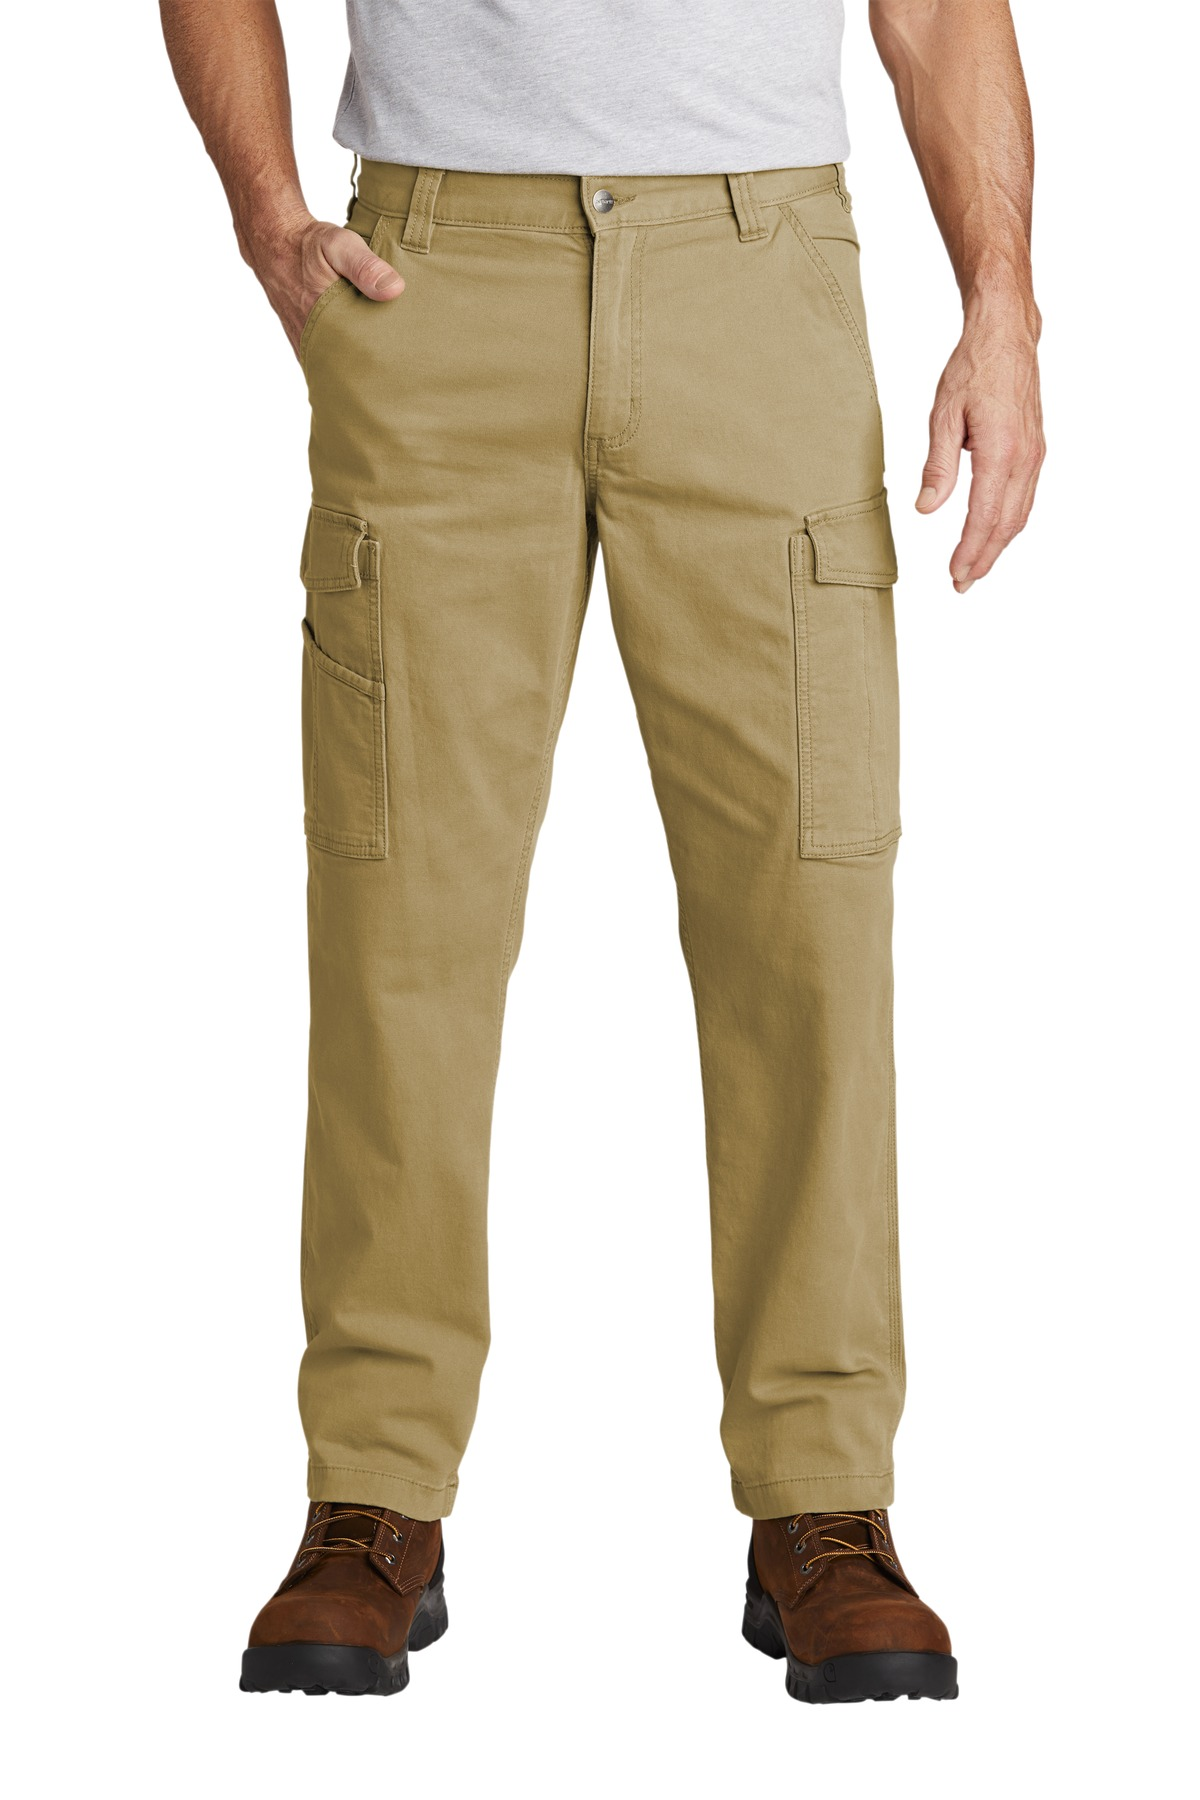 Carhartt ®  Rugged Flex ®  Rigby Cargo Pant CT103574 - Dark Khaki